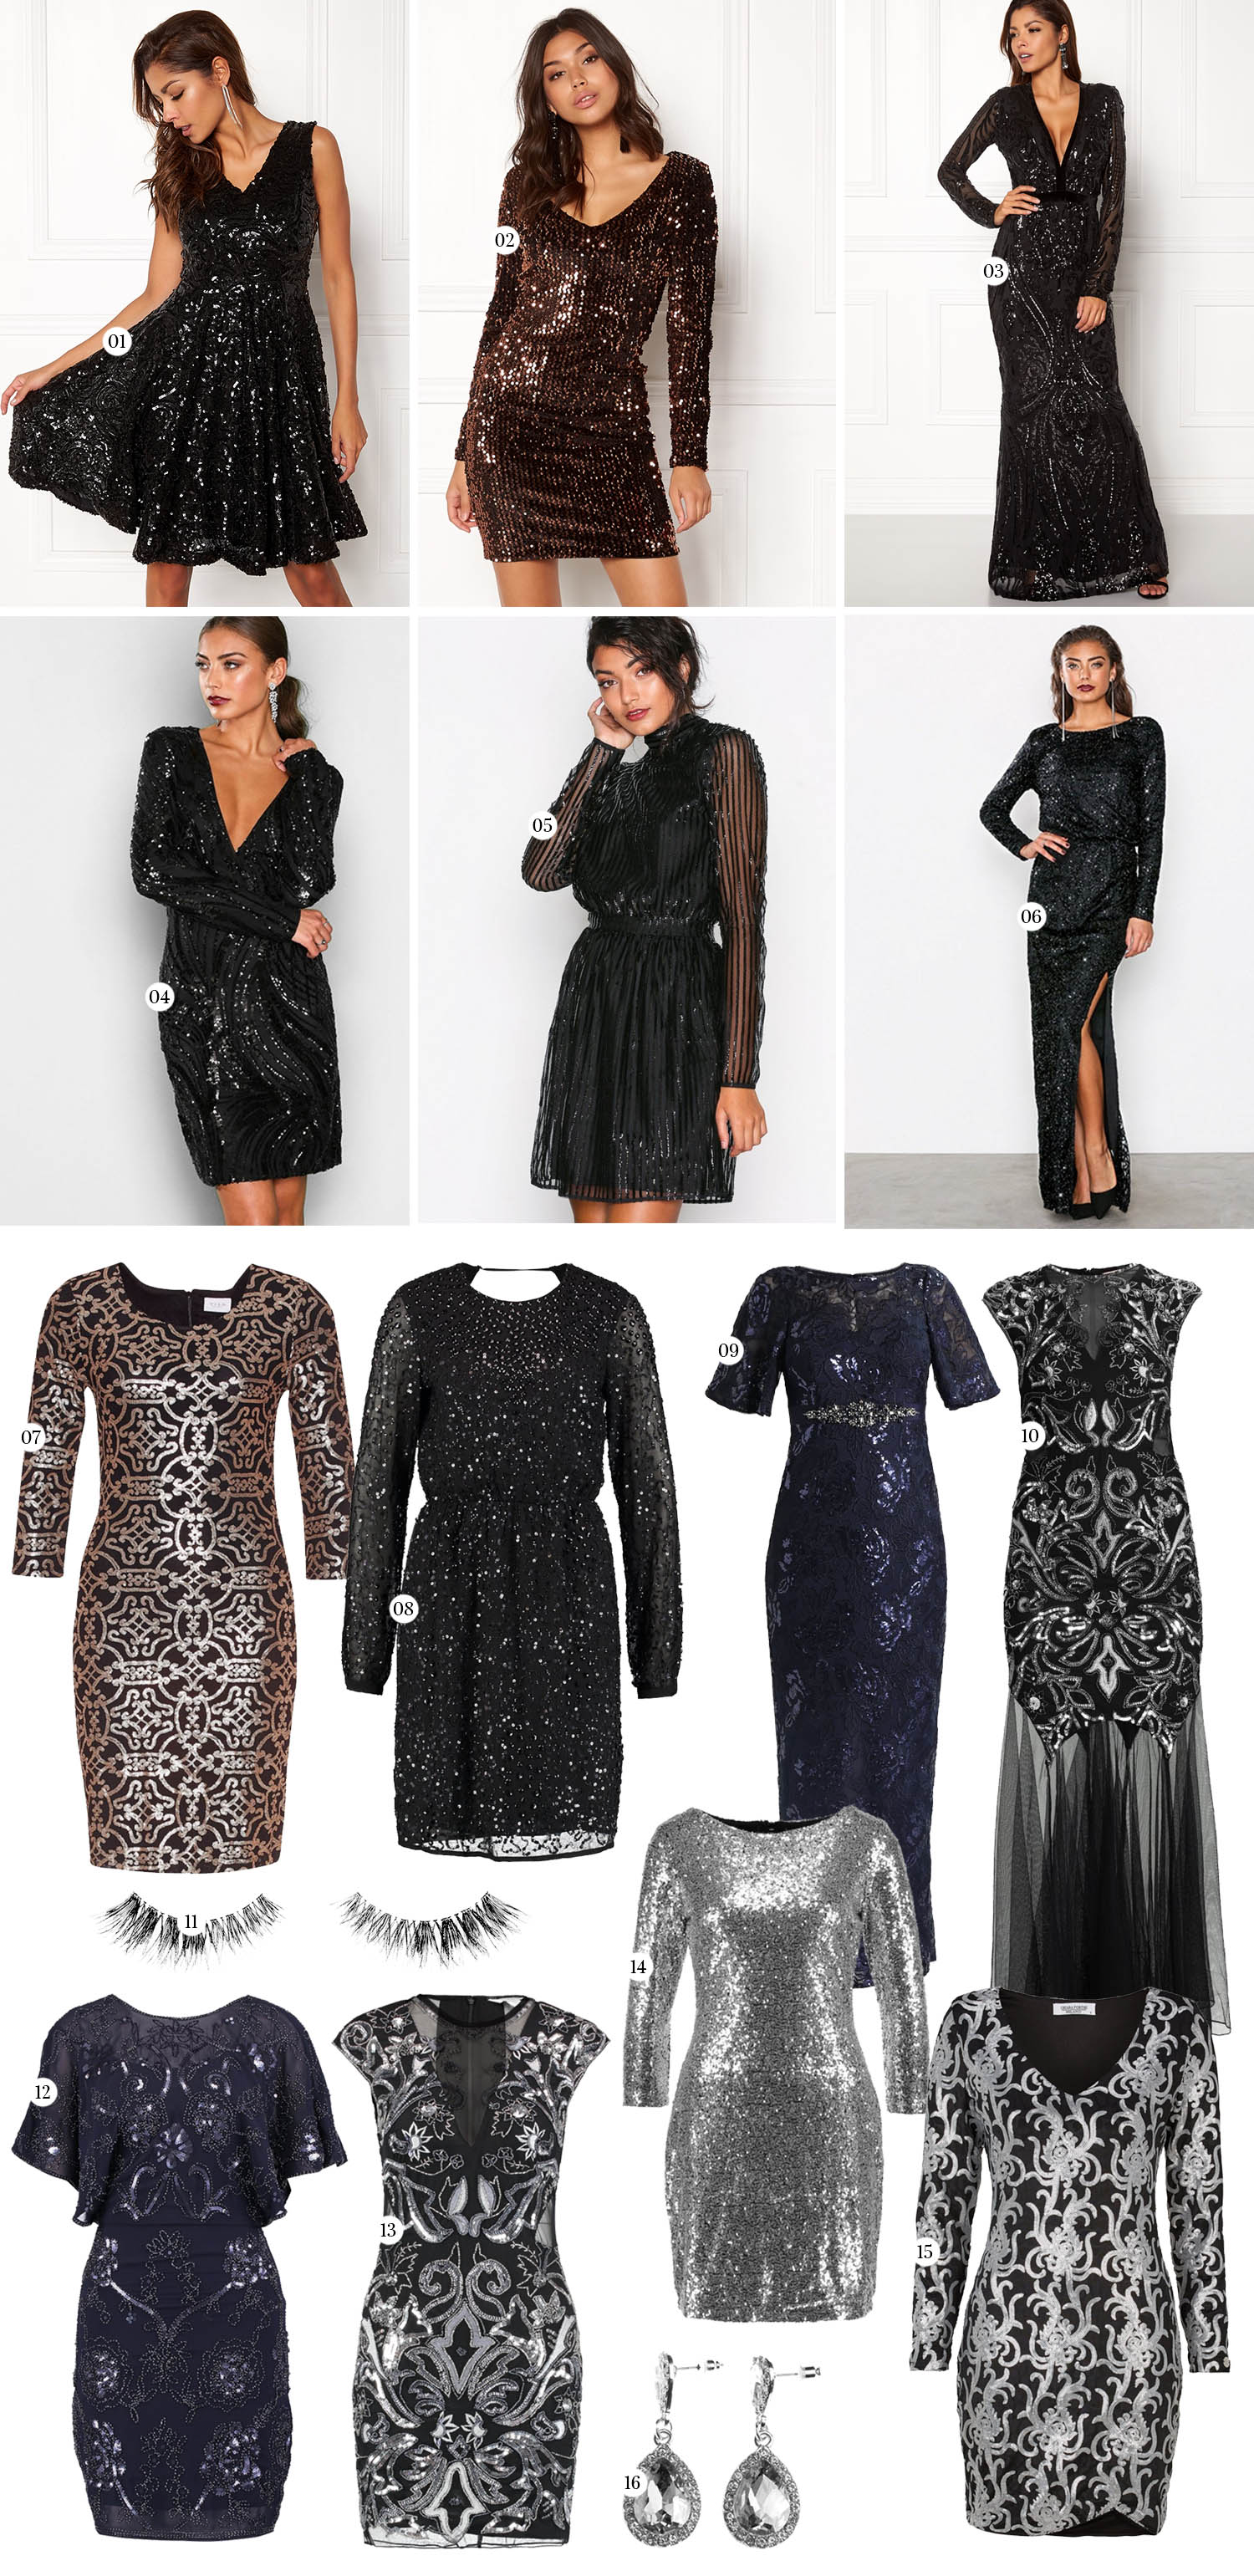 New Year's Eve Dresses - Sparkling Sequin Dresses